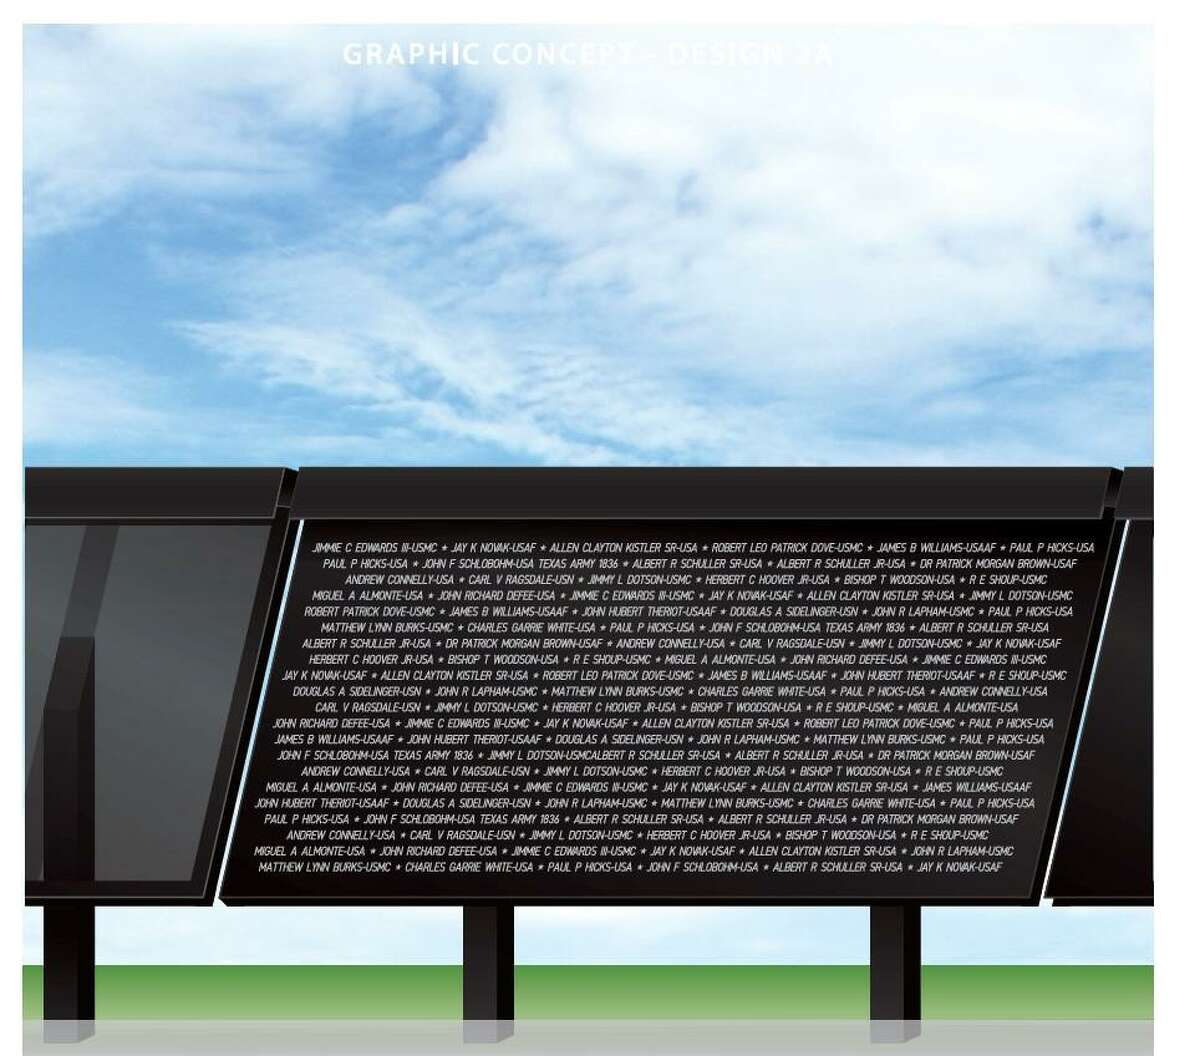 """""""The Line"""" monument at the Montgomery County Veteran's Memorial Park will honor those with military service past and present.Members of the community have been able to submit the name or names of their loved one with military service and their name will be featured on panels as a part of """"The Line"""" monument at Veteran's Memorial Park."""